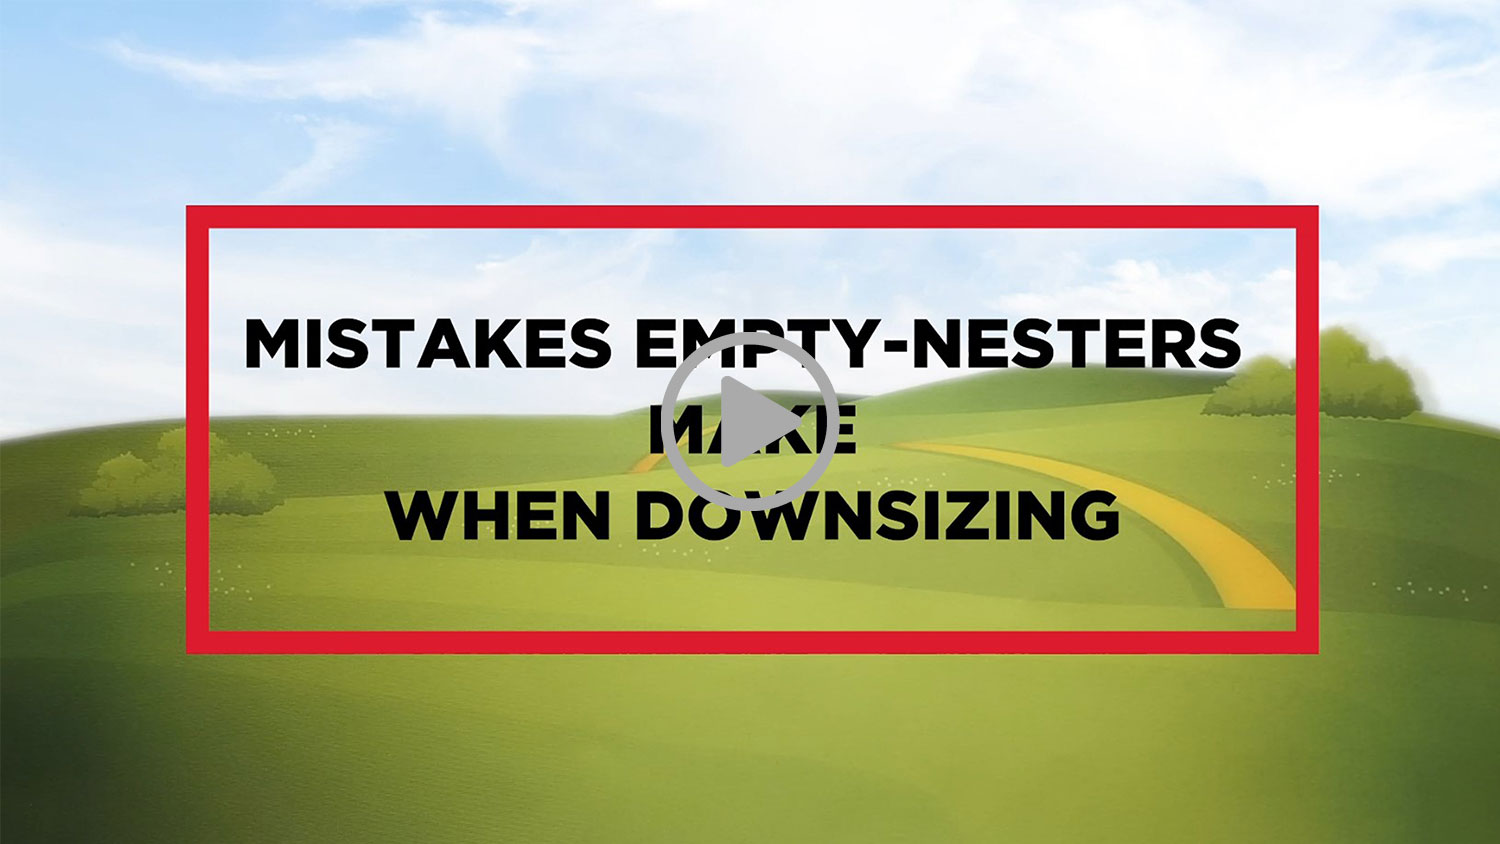 MISTAKES EMPTY-NESTERS MAKE WHEN DOWNSIZING